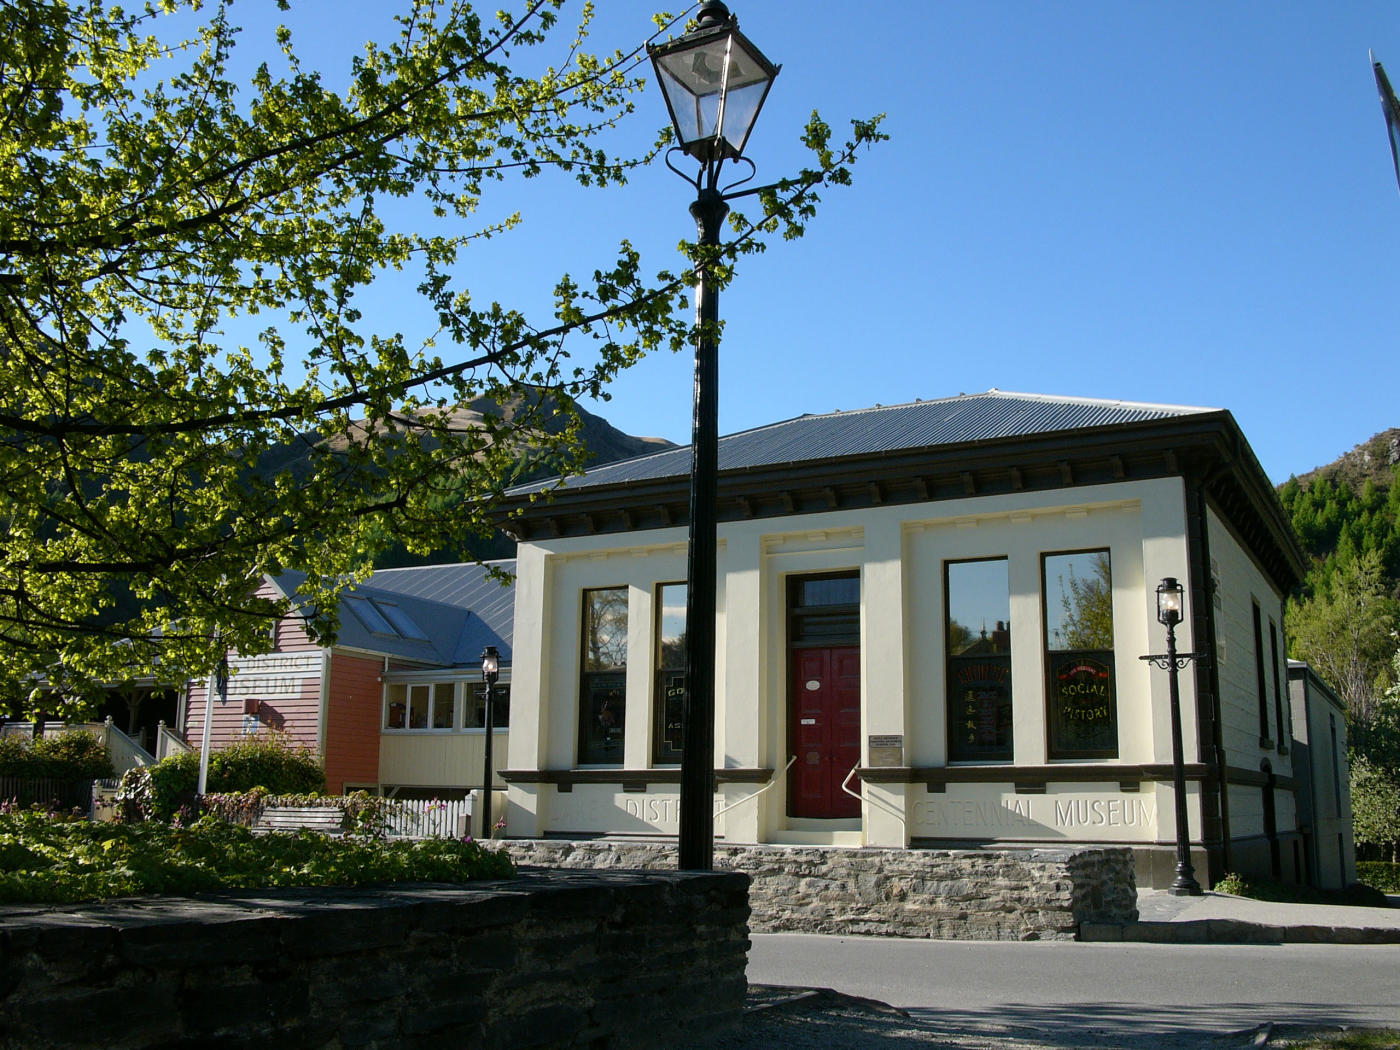 Lakes District Museum facade, Arrowtown